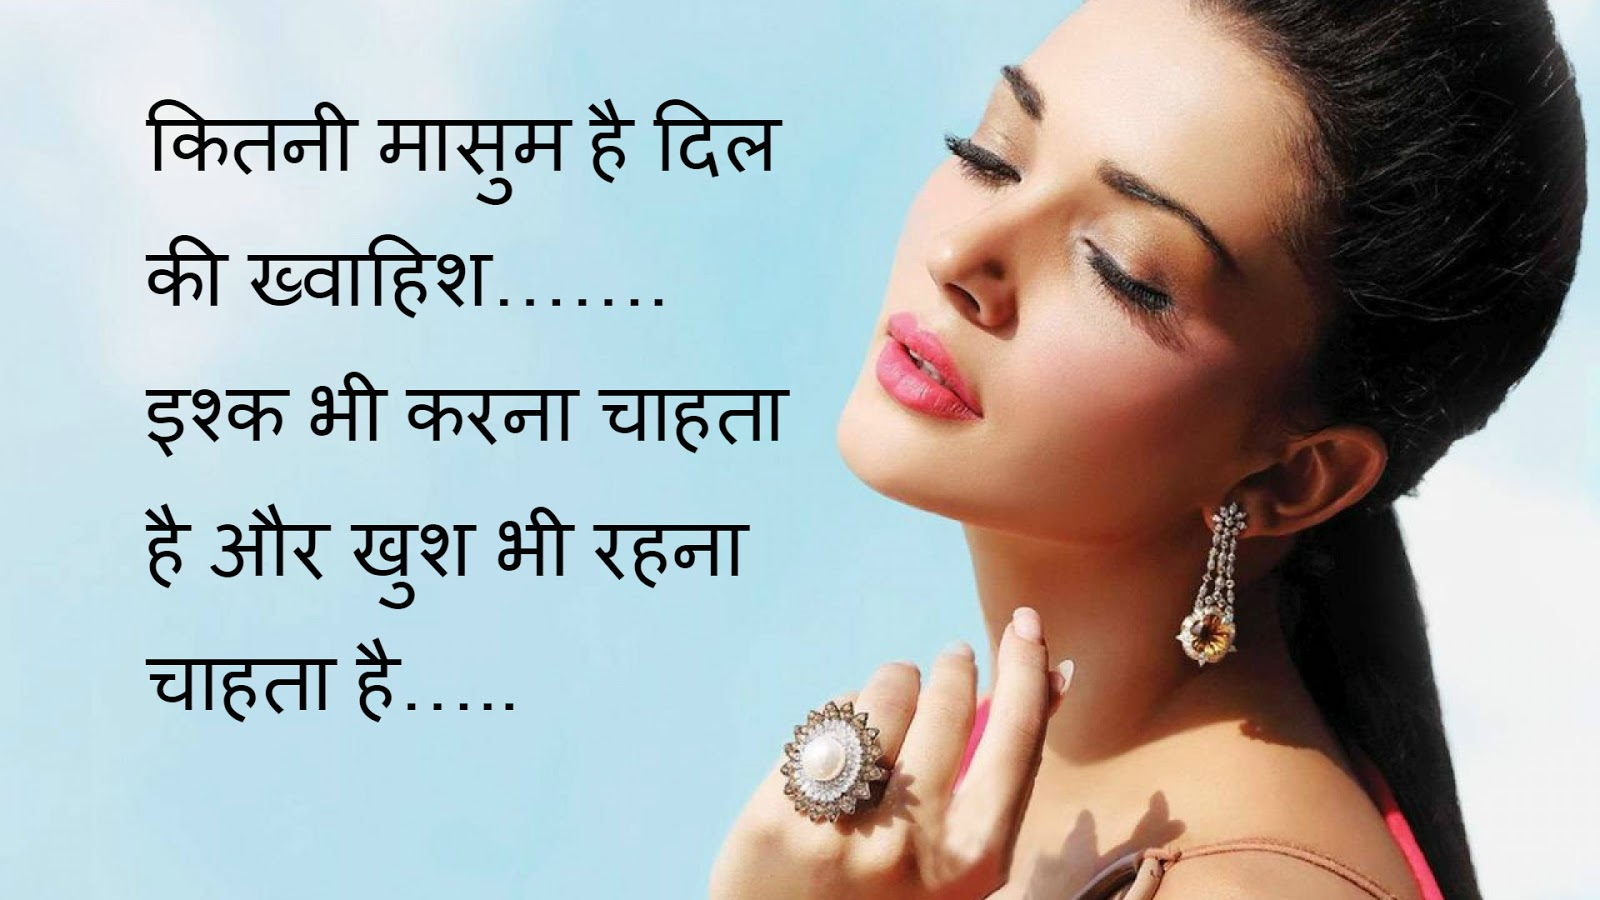 Latest Sms Hindi Shayari Whatsapp Status Free Download